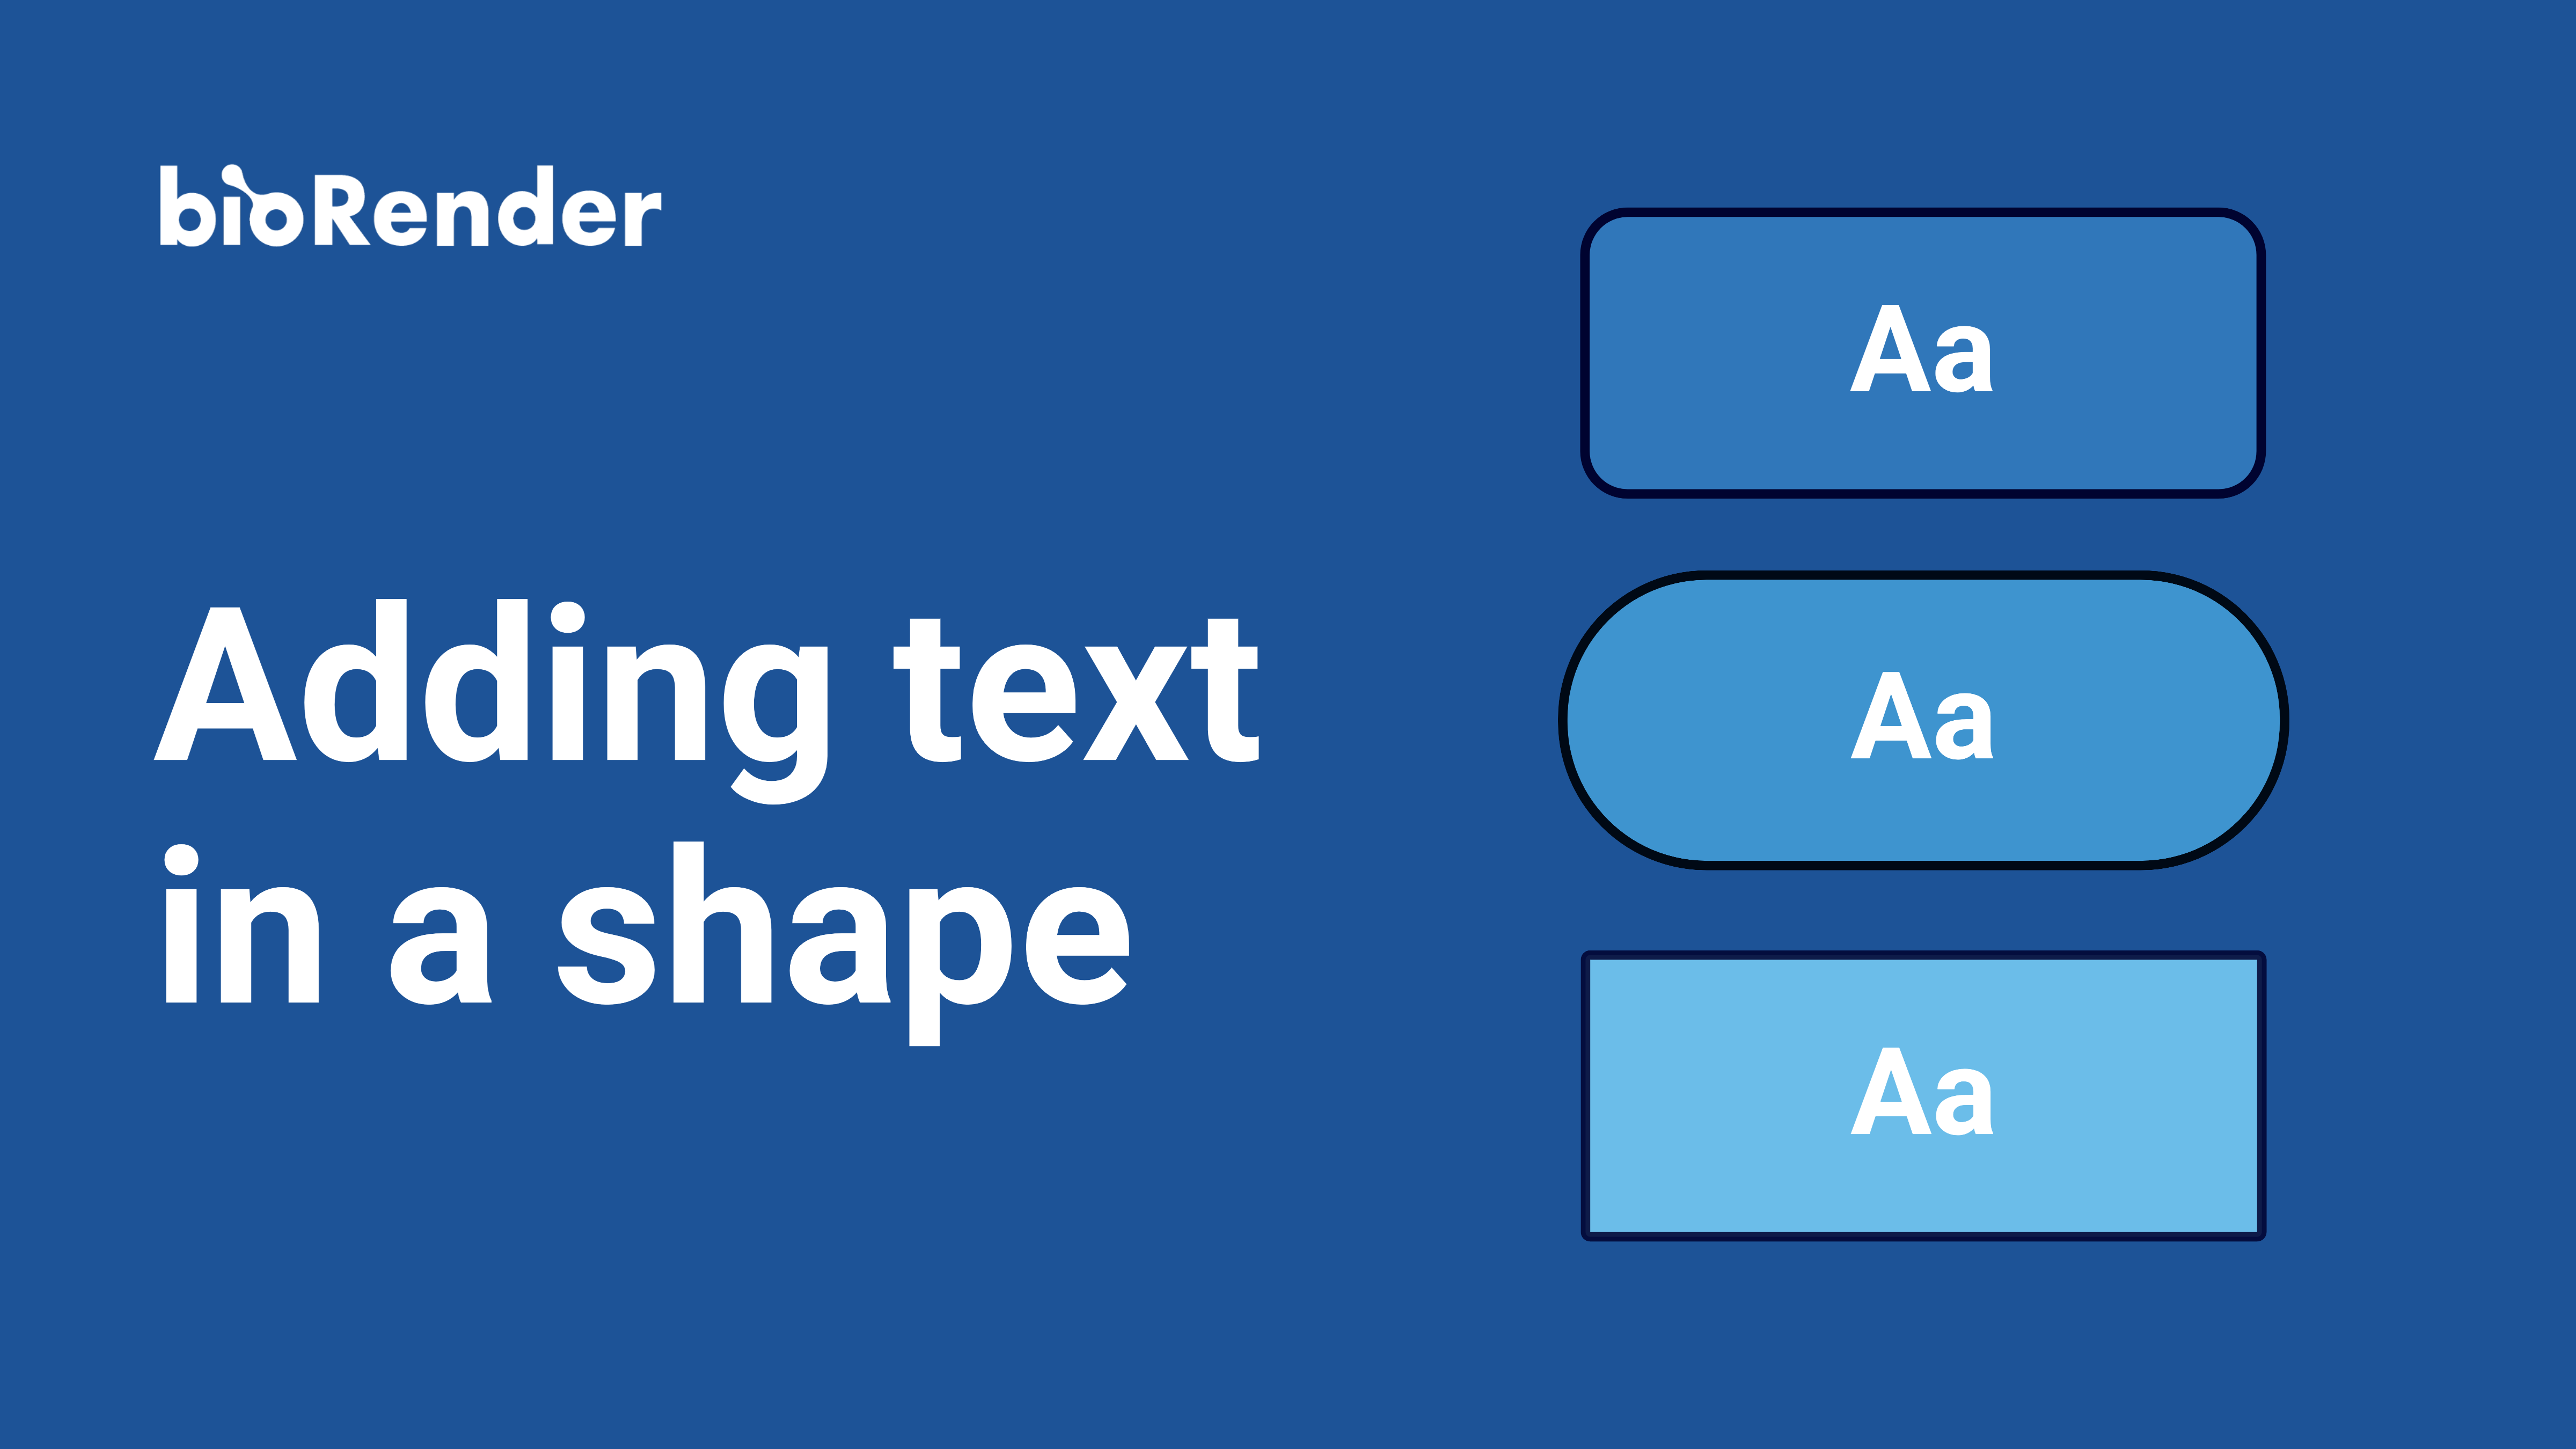 Adding text in a shape